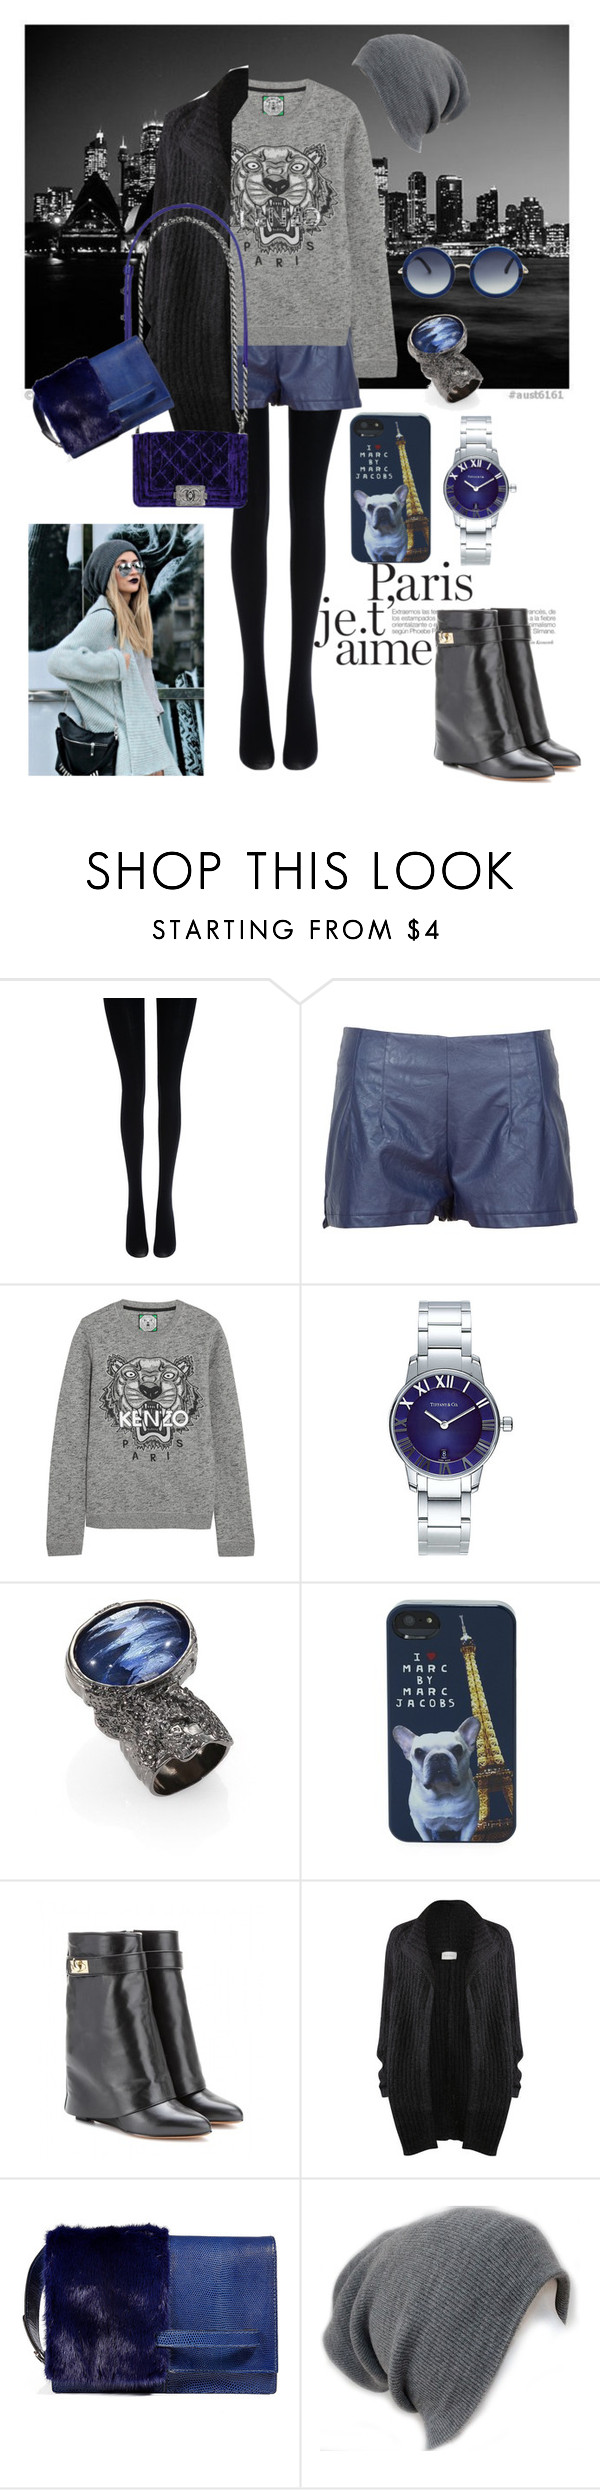 """Leather shorts"" by kajfkajf ❤ liked on Polyvore featuring Fogal, Kenzo, Tiffany & Co., Yves Saint Laurent, Marc by Marc Jacobs, Givenchy, American Vintage, Chanel, Valentino and The Row"